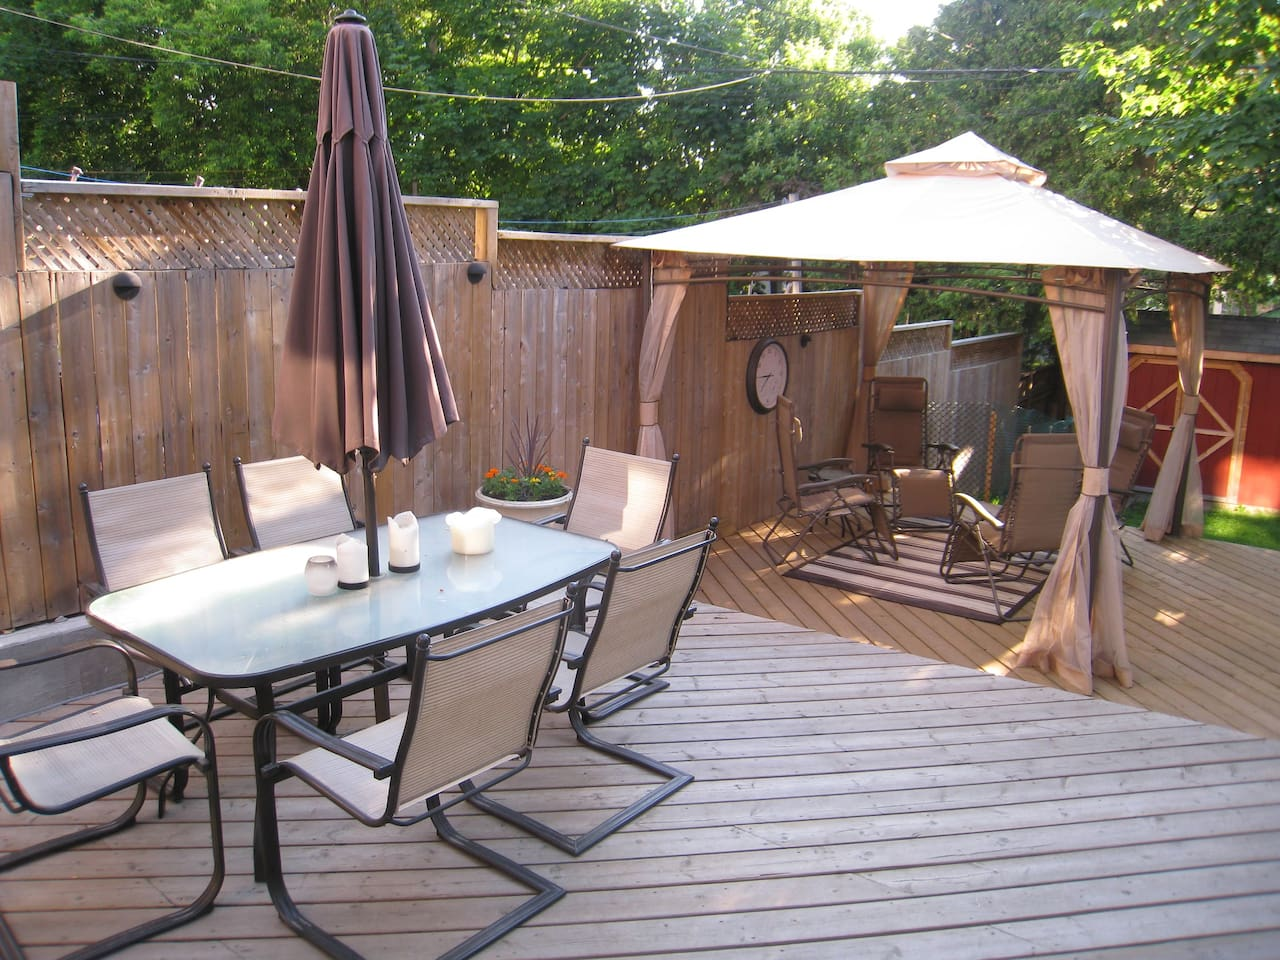 Back deck with separate sitting areas, BBQ and canopy